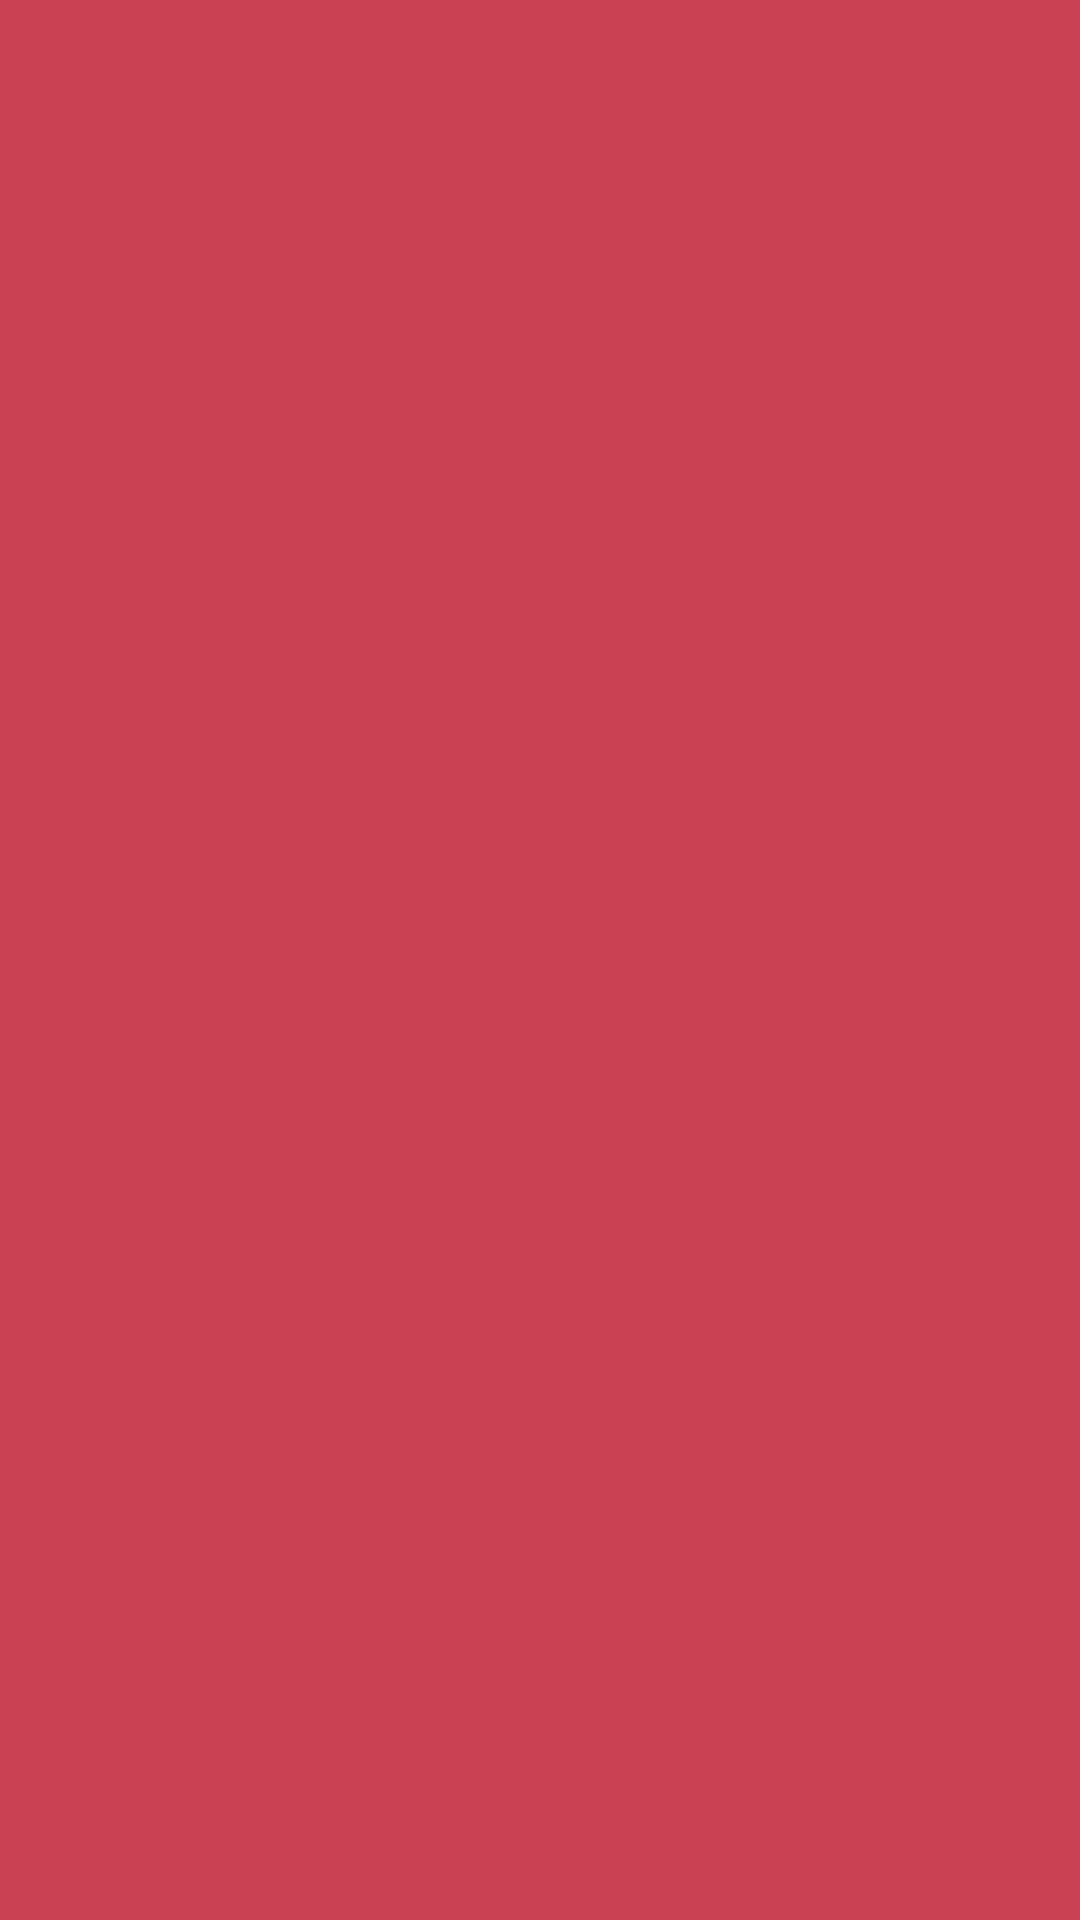 1080x1920 Brick Red Solid Color Background